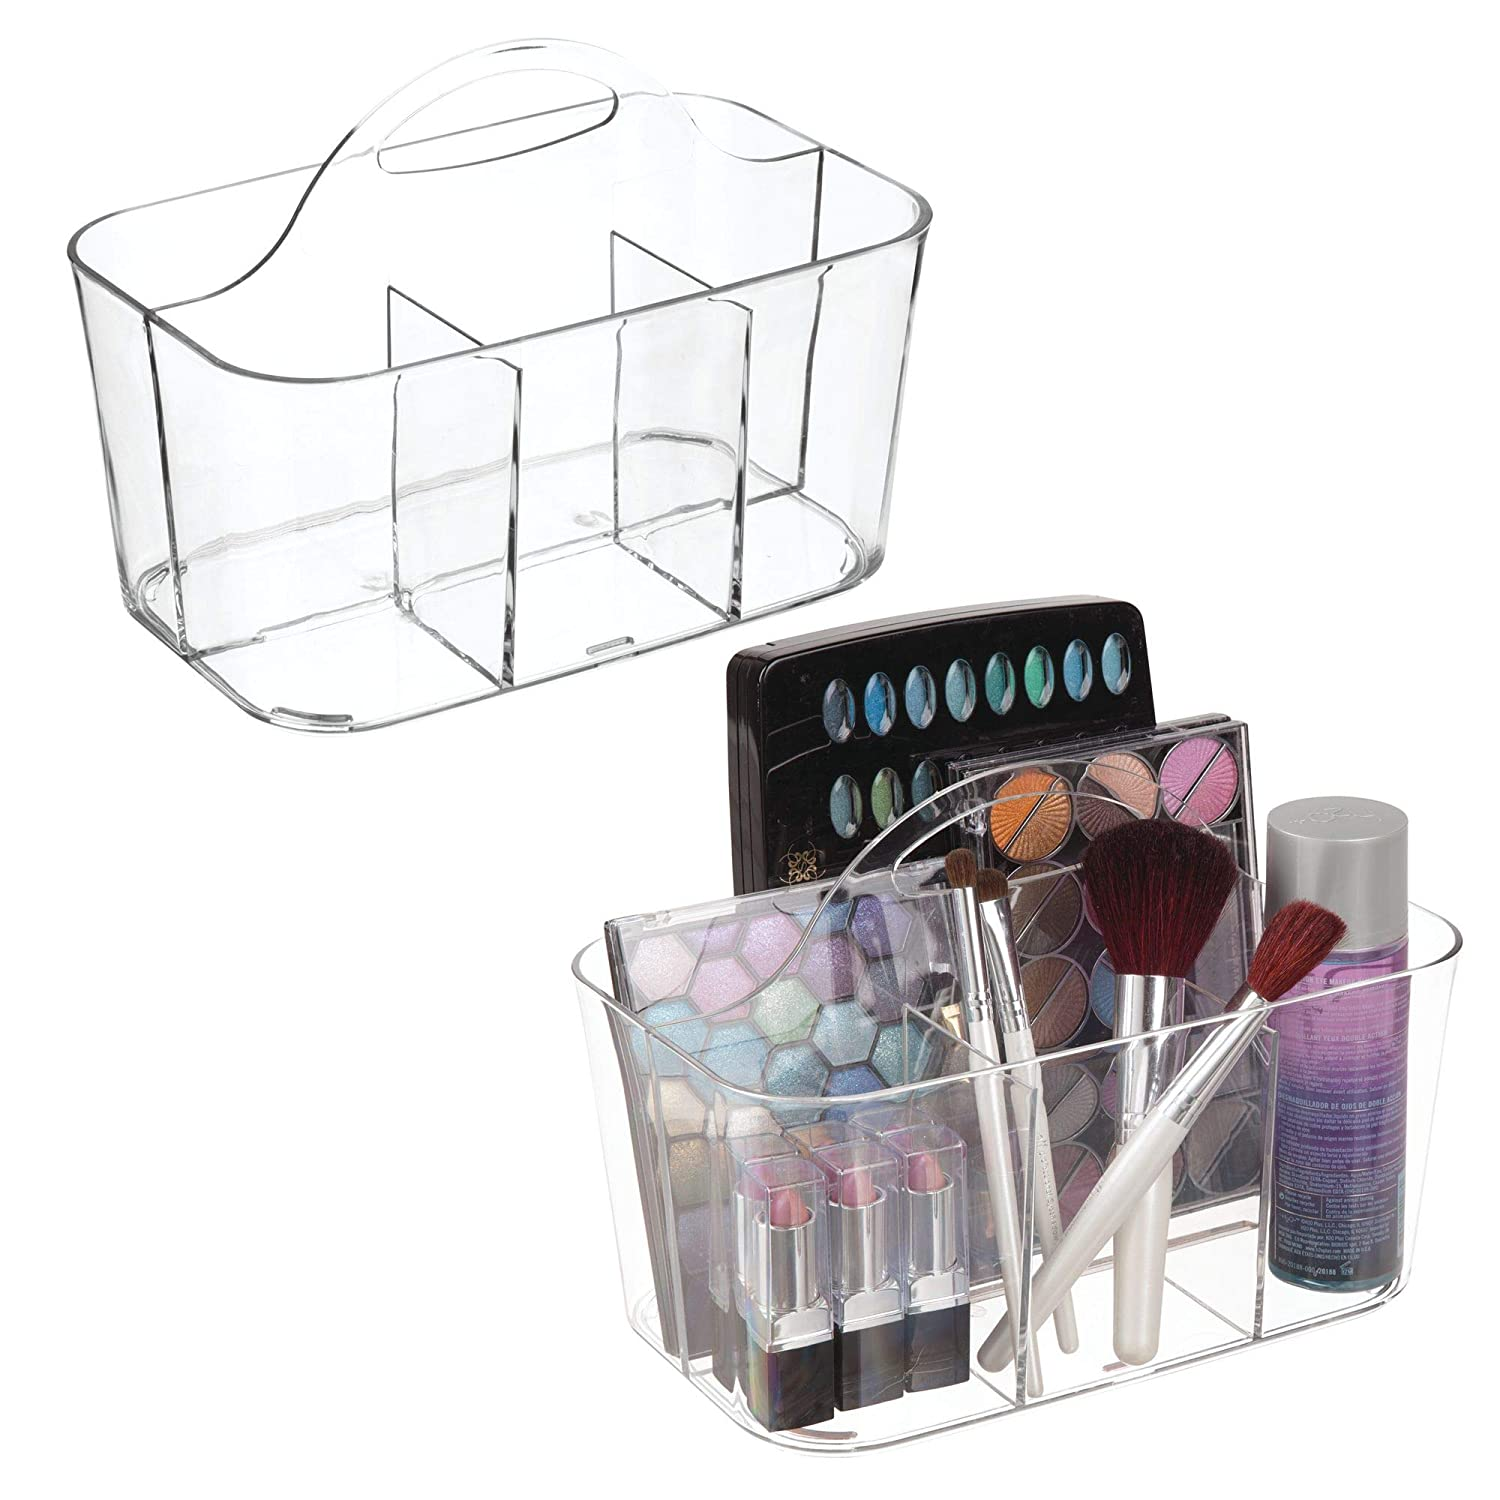 mDesign Plastic Portable Makeup Organizer Caddy Tote, Divided Basket Bin Handle Bathroom Storage - Holds Blush Makeup Brushes, Eyeshadow Palette, Lipstick - 2 Pack, Small, Clear MetroDecor